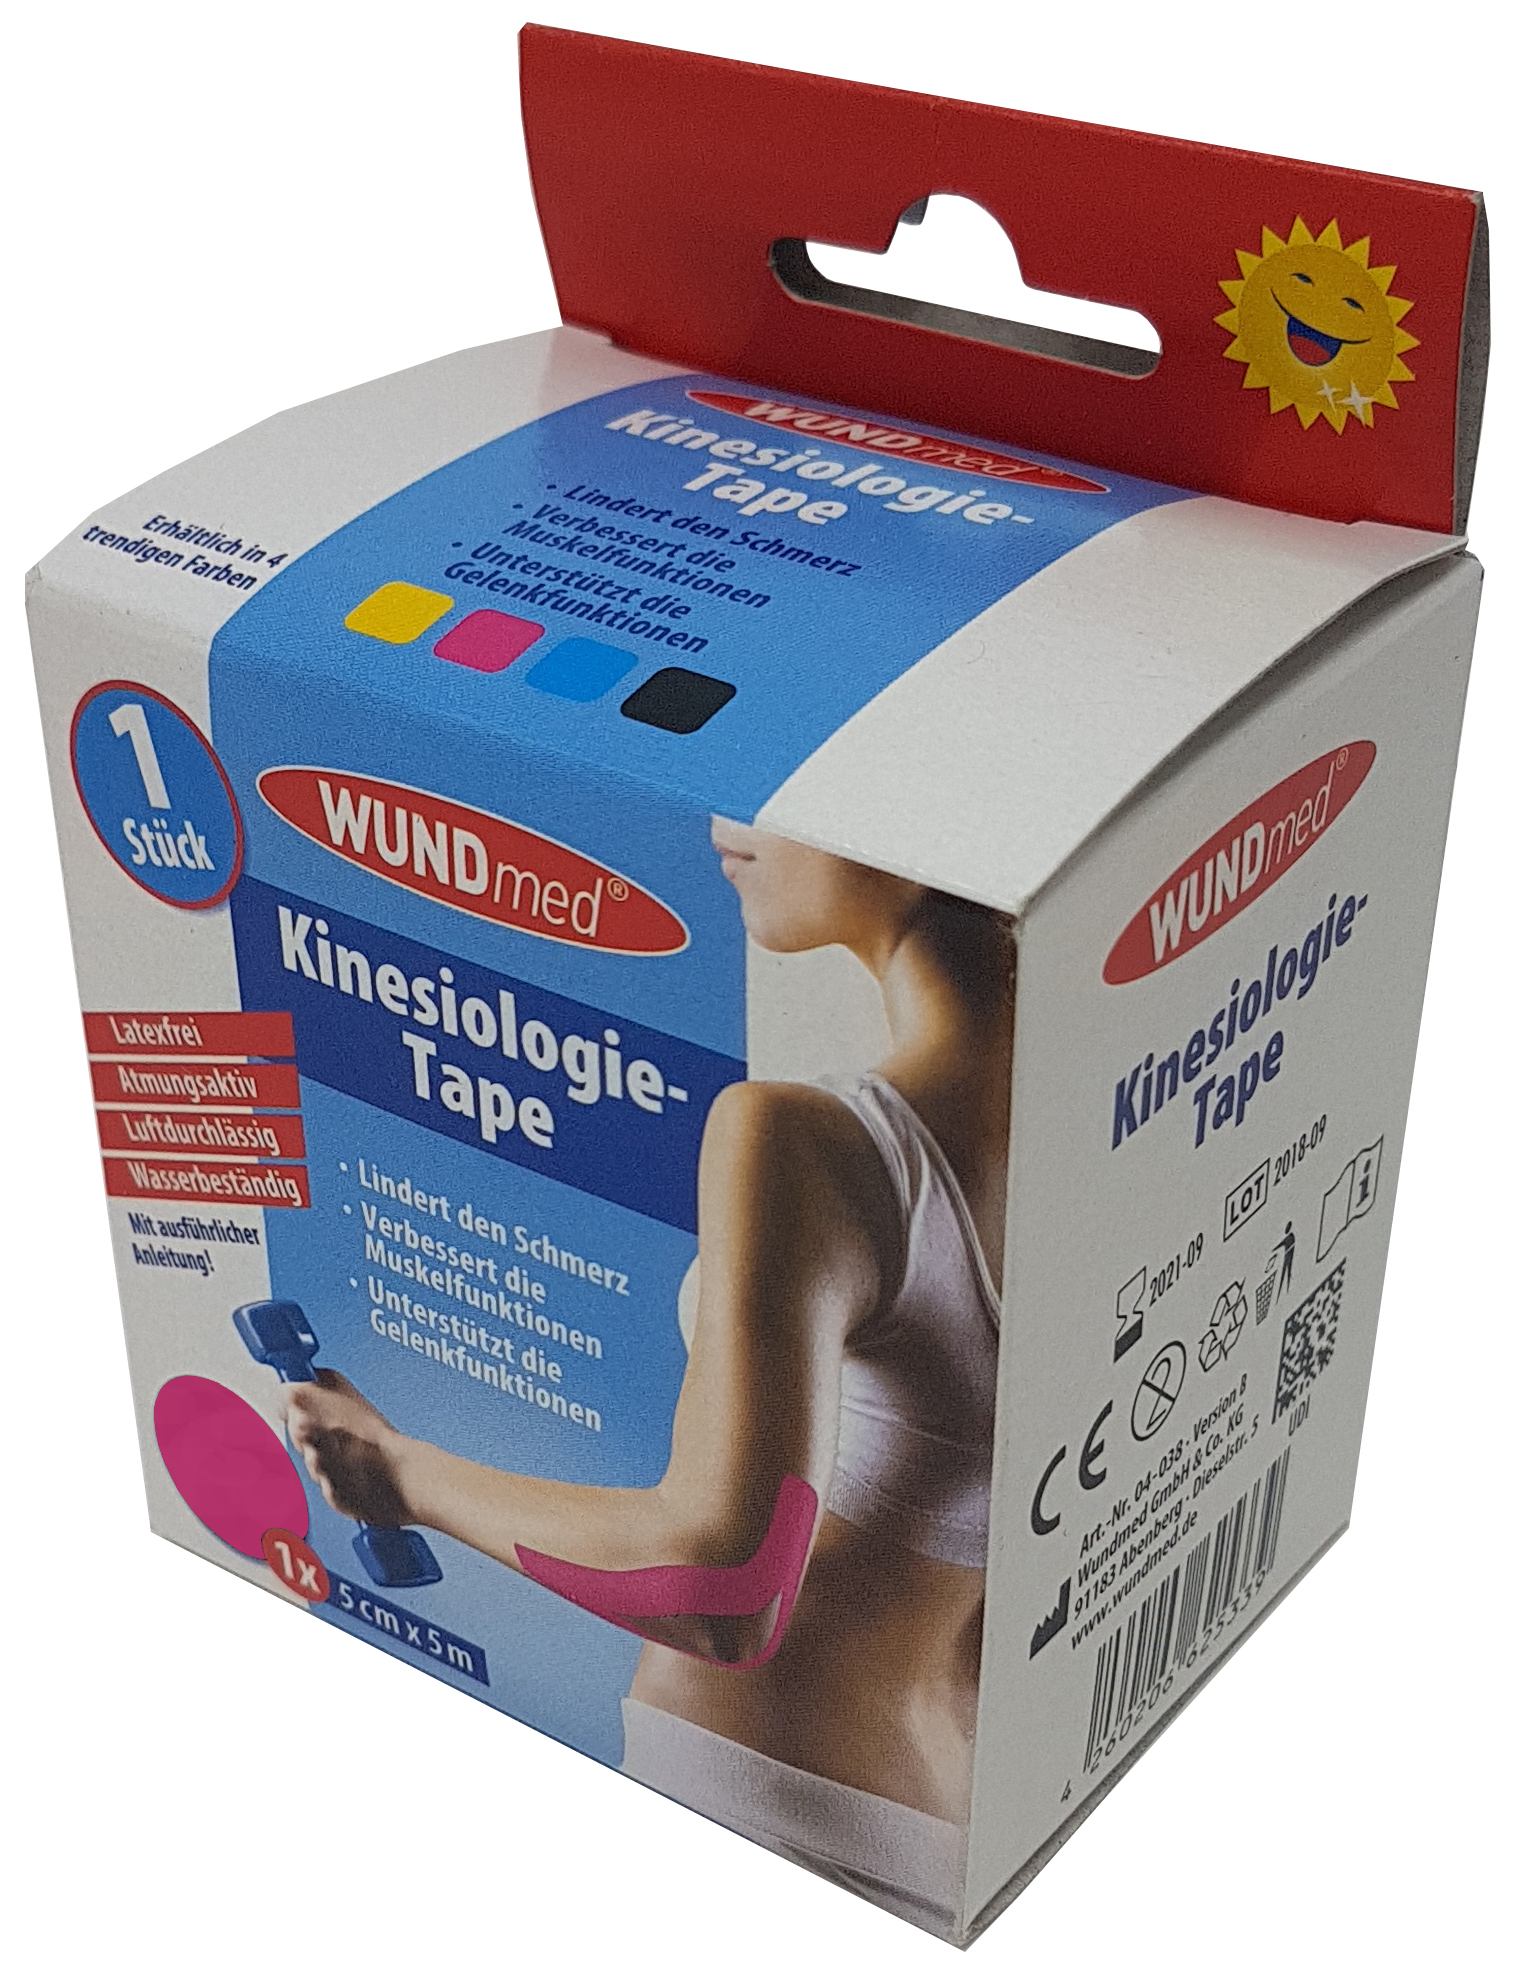 01768 - Wundmed Kinesiologisches Tape, 5m x 5cm, pink